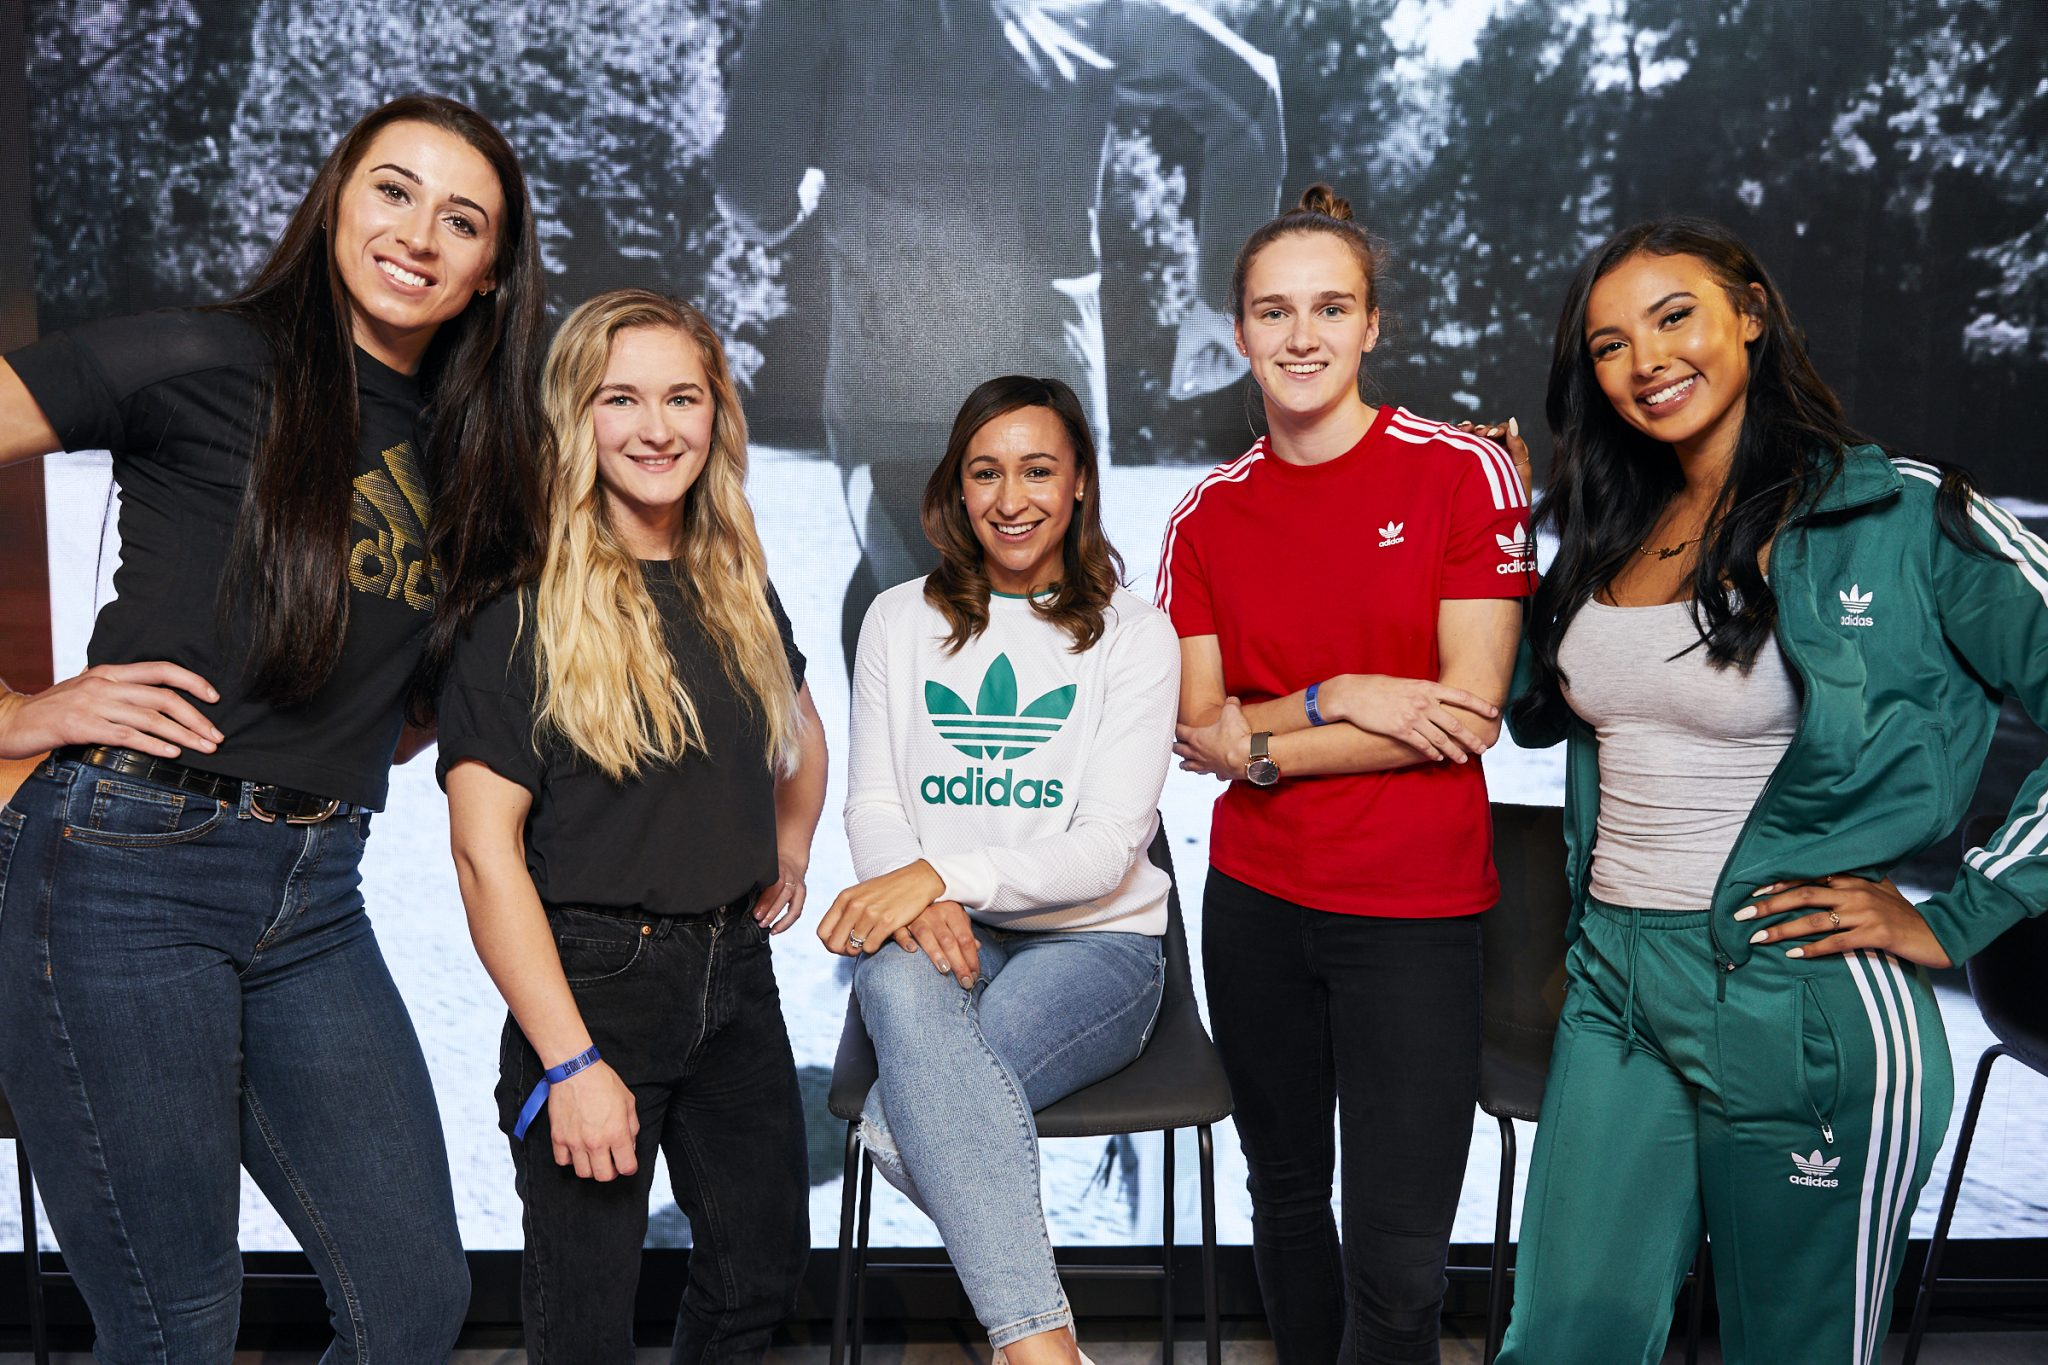 ADIDAS LDN - FUTURE OF SPORT - WOMENS PANEL 2